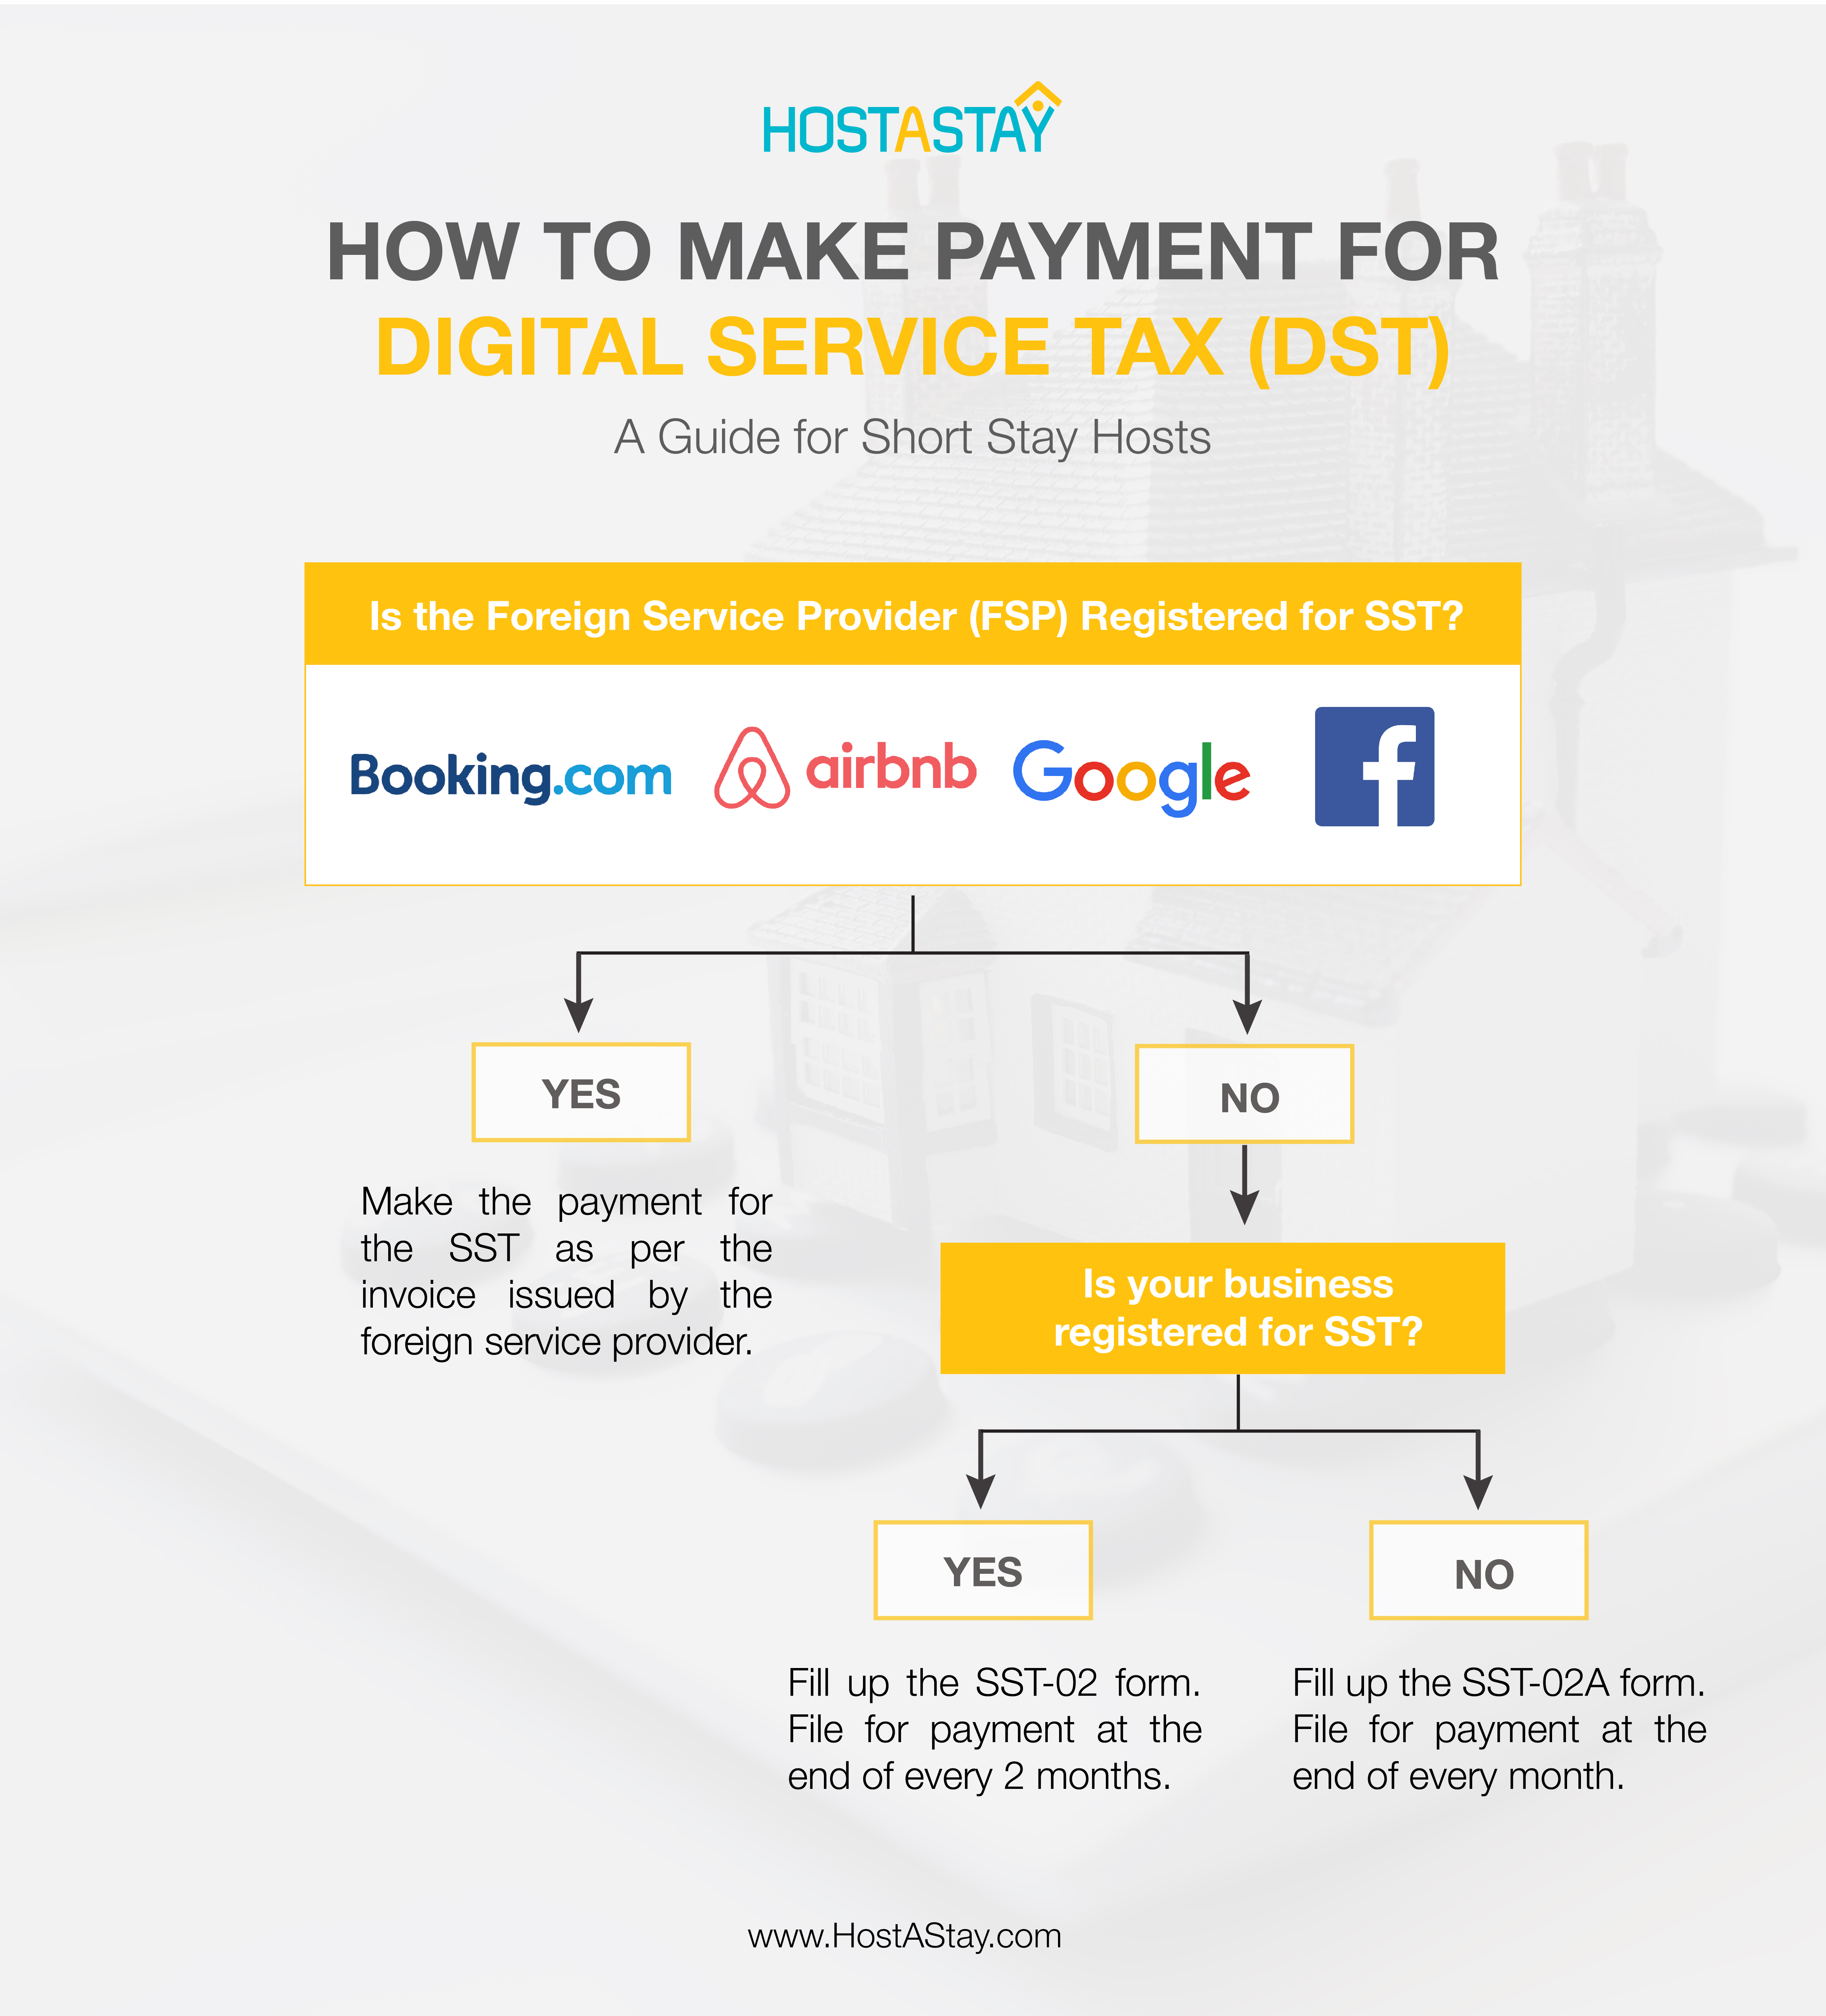 How to Make Payment for Digital Service Tax (DST): A Guide for Malaysia Short Stay Hosts